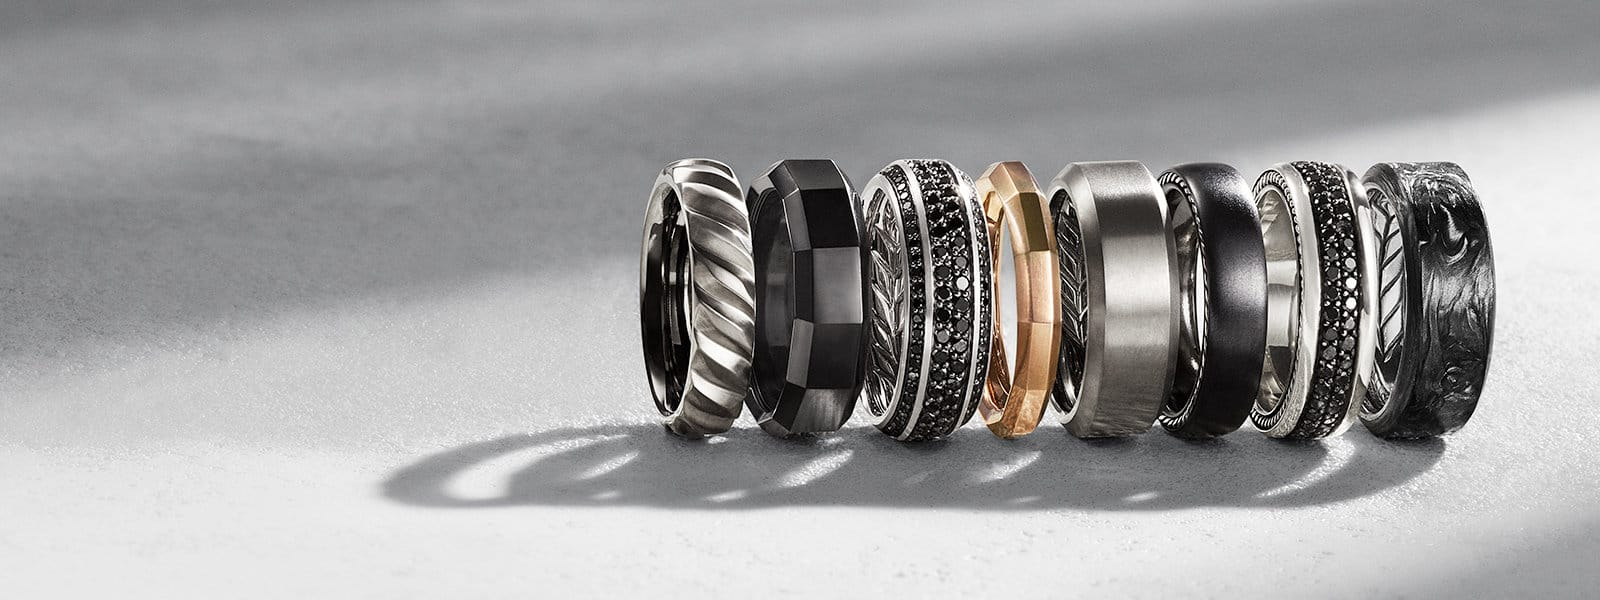 A row of Cable, Faceted, Beveled and Streamline men's bands in a mix of grey or black titanium, sterling silver, or 18K rose gold with or without black diamonds or forged carbon, on a textured white stone.